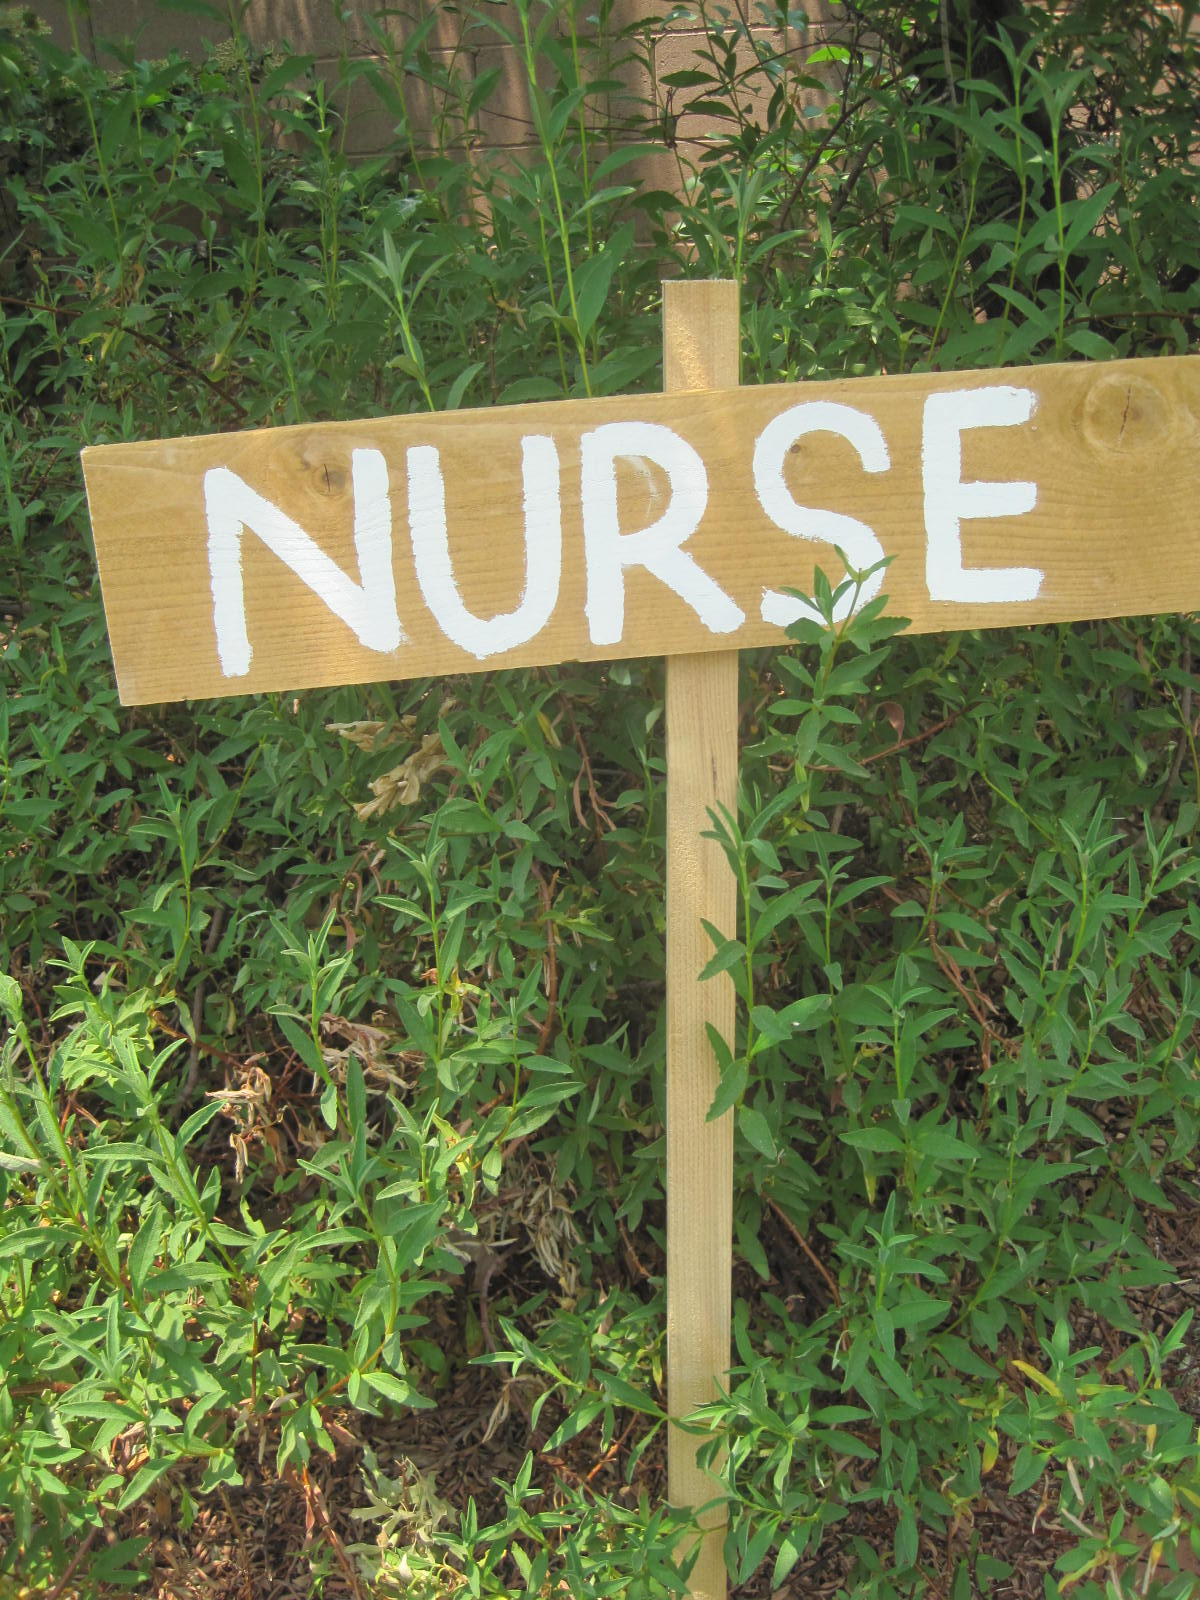 camp nurse sign